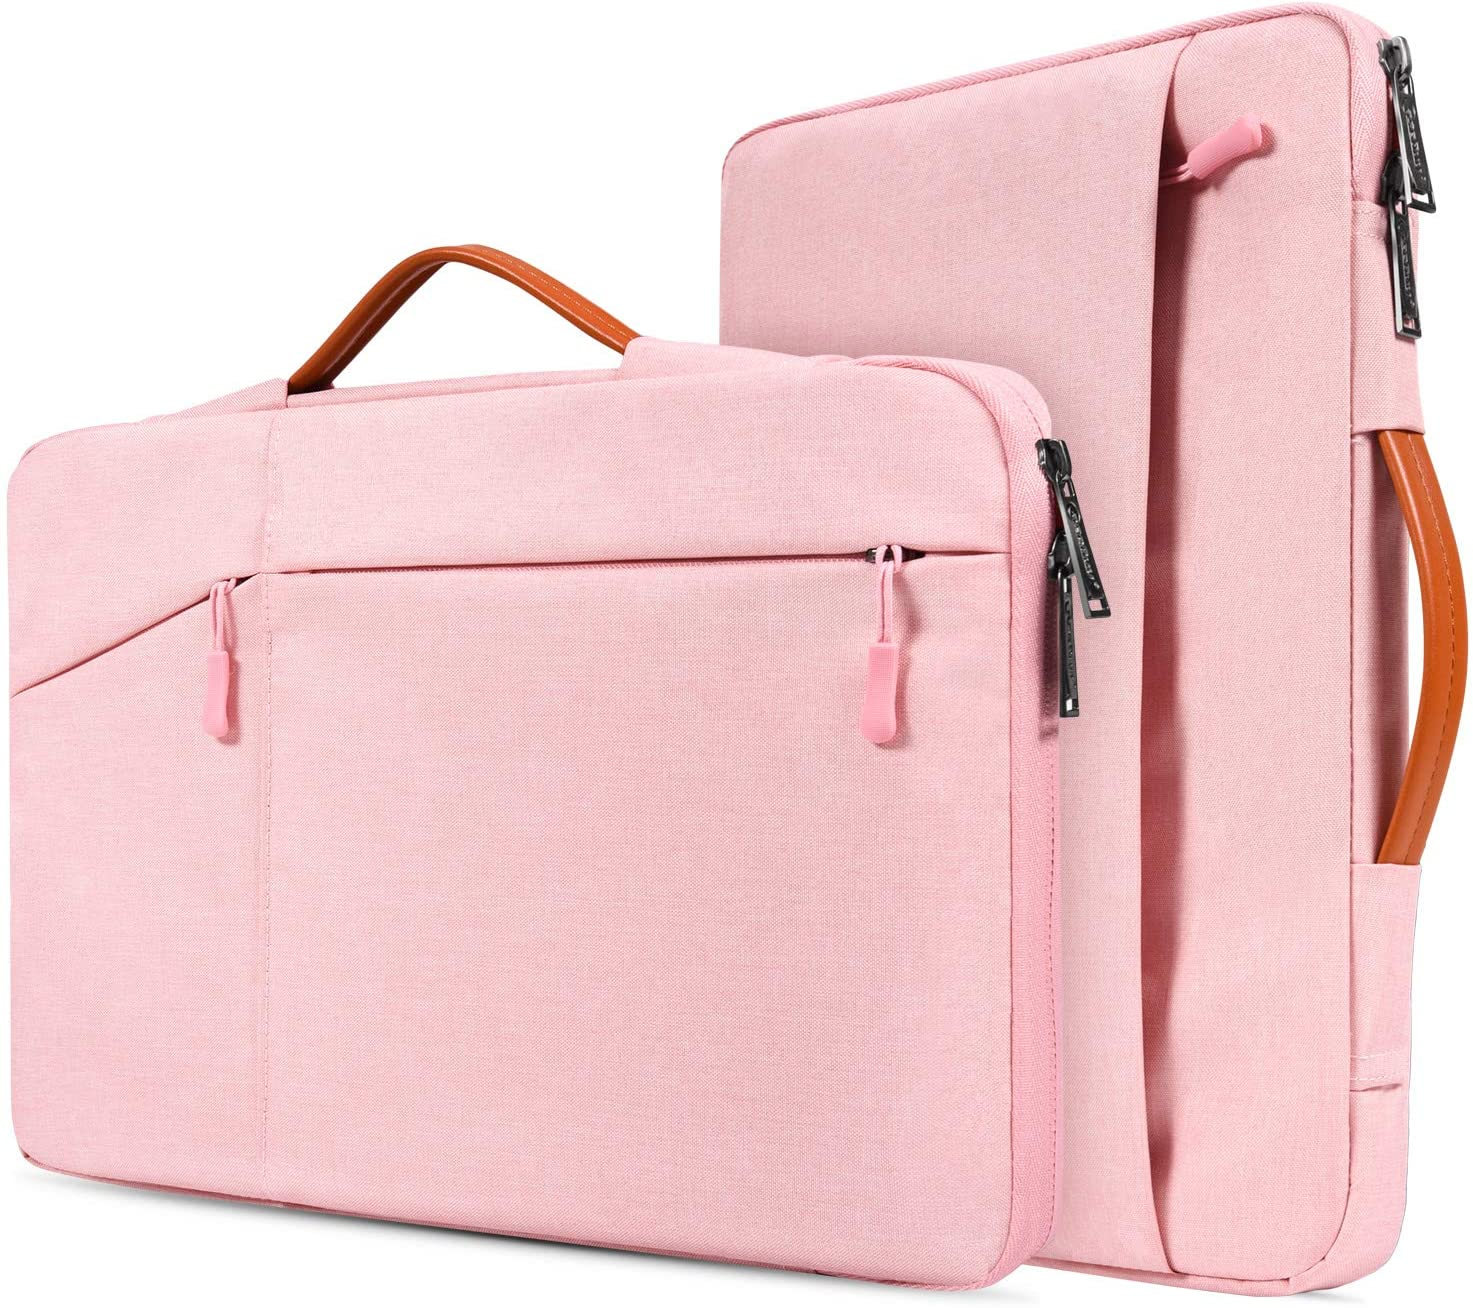 11.6-12.9 Inch Laptop Briefcase Bag for DELL XPS 13 9380, Lenovo Chromebook C330, Samsung Chromebook Pro 12.2 12.3, Surface Pro 6/5, Google Pixel Slate, 360° Protective Notebook Bag Girls Women,Pink